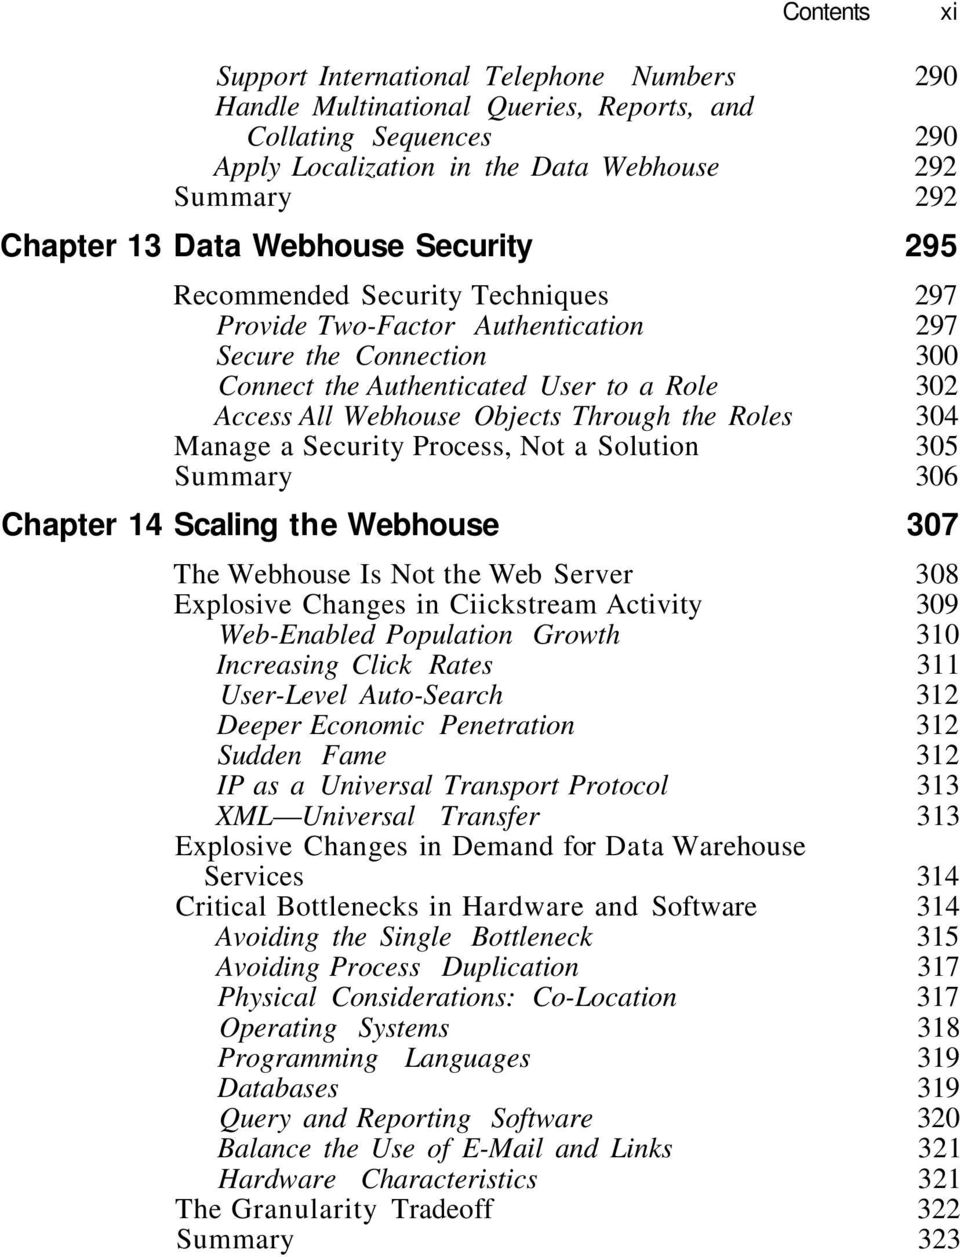 Through the Roles 304 Manage a Security Process, Not a Solution 305 Summary 306 Chapter 14 Scaling the Webhouse 307 The Webhouse Is Not the Web Server 308 Explosive Changes in Ciickstream Activity